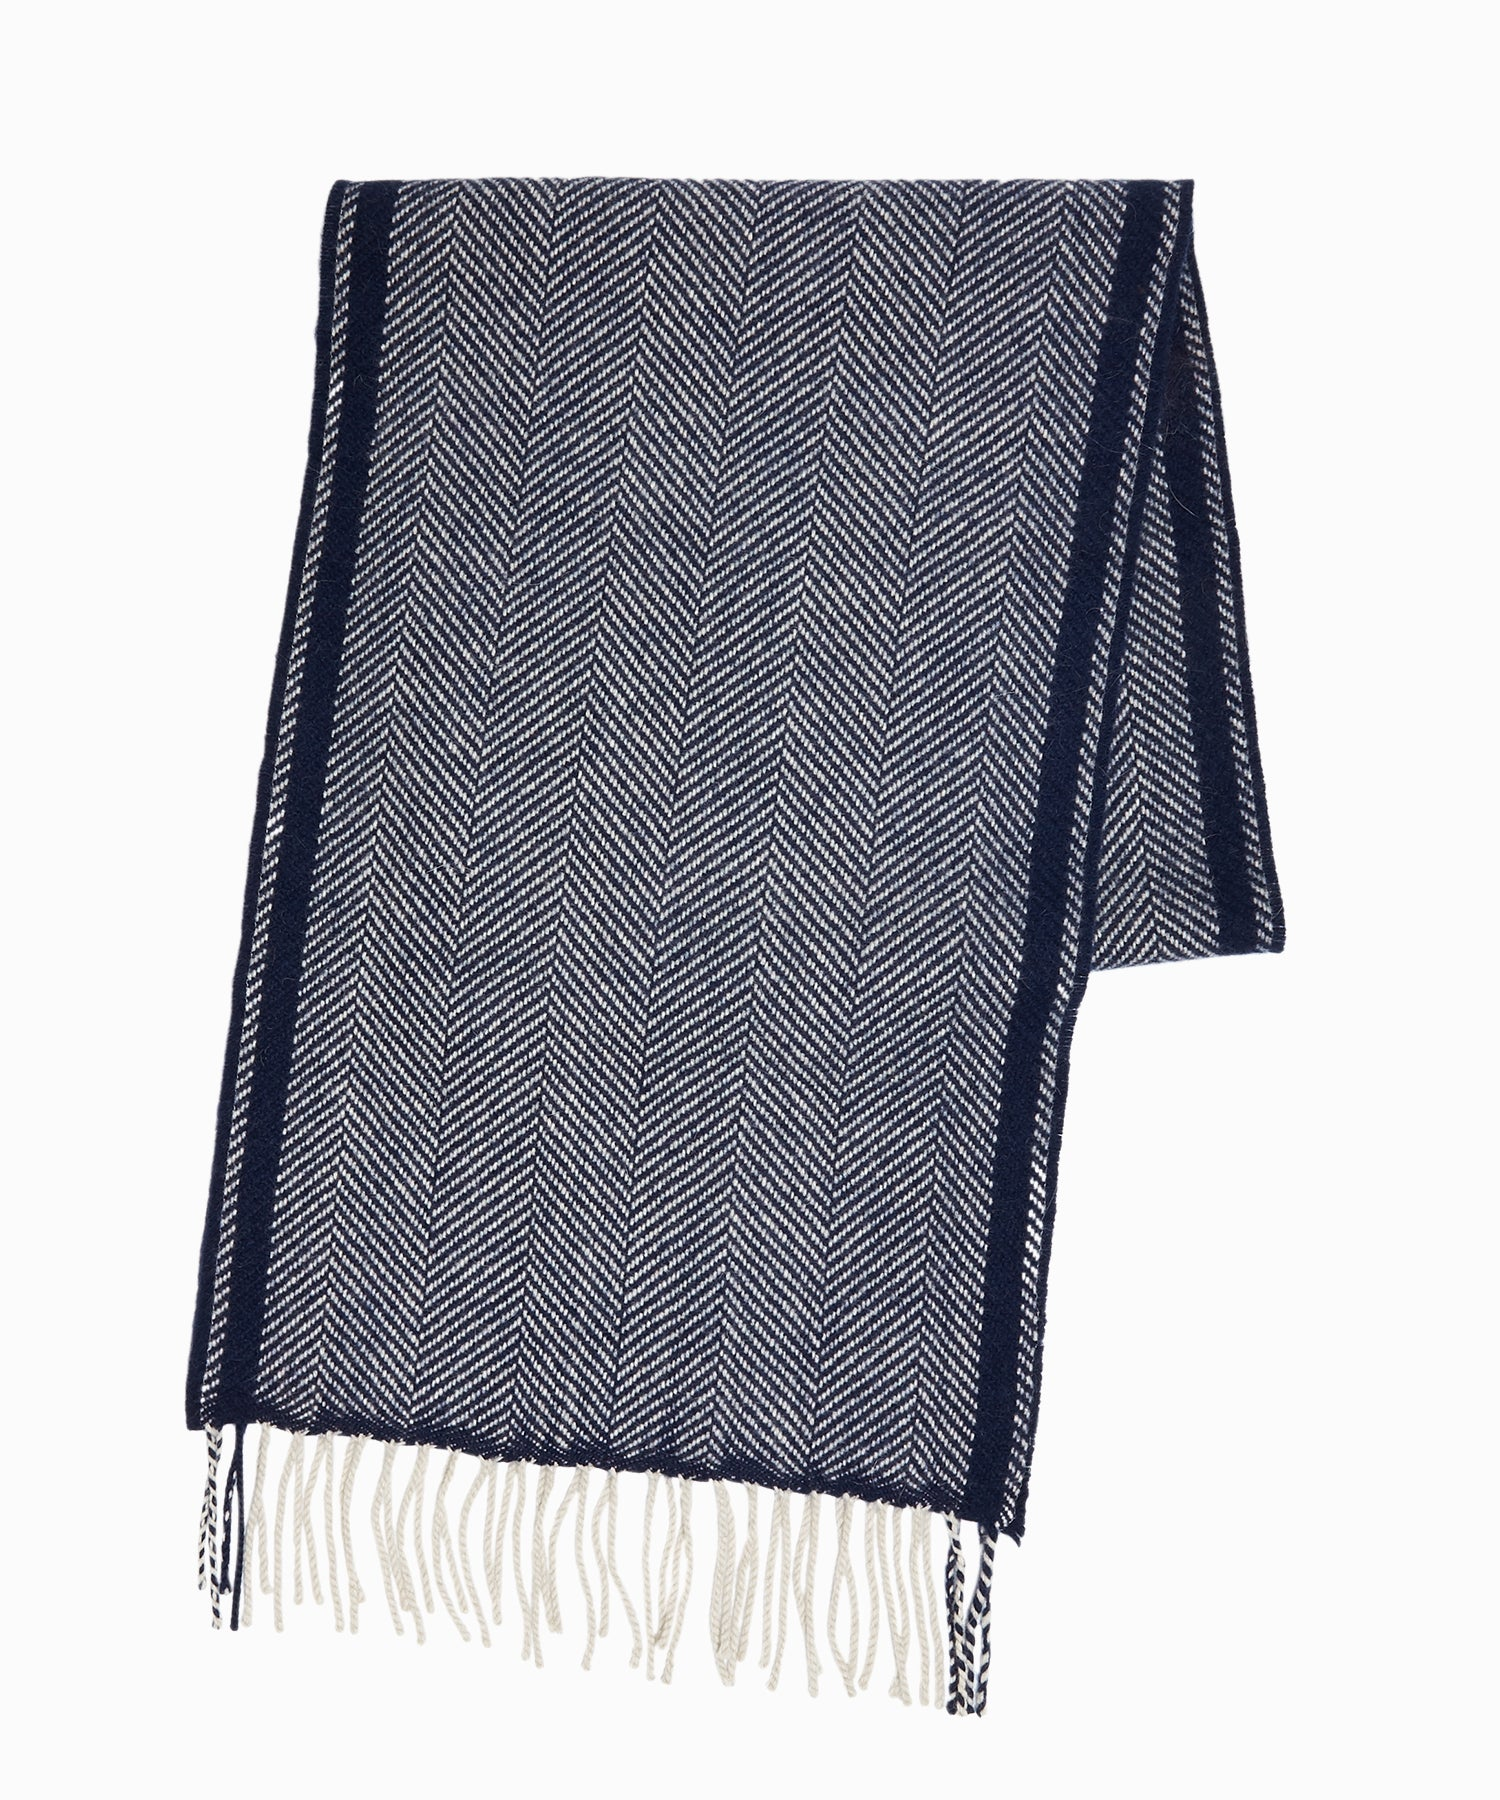 Drake's Lambswool Herringbone Scarf in Navy